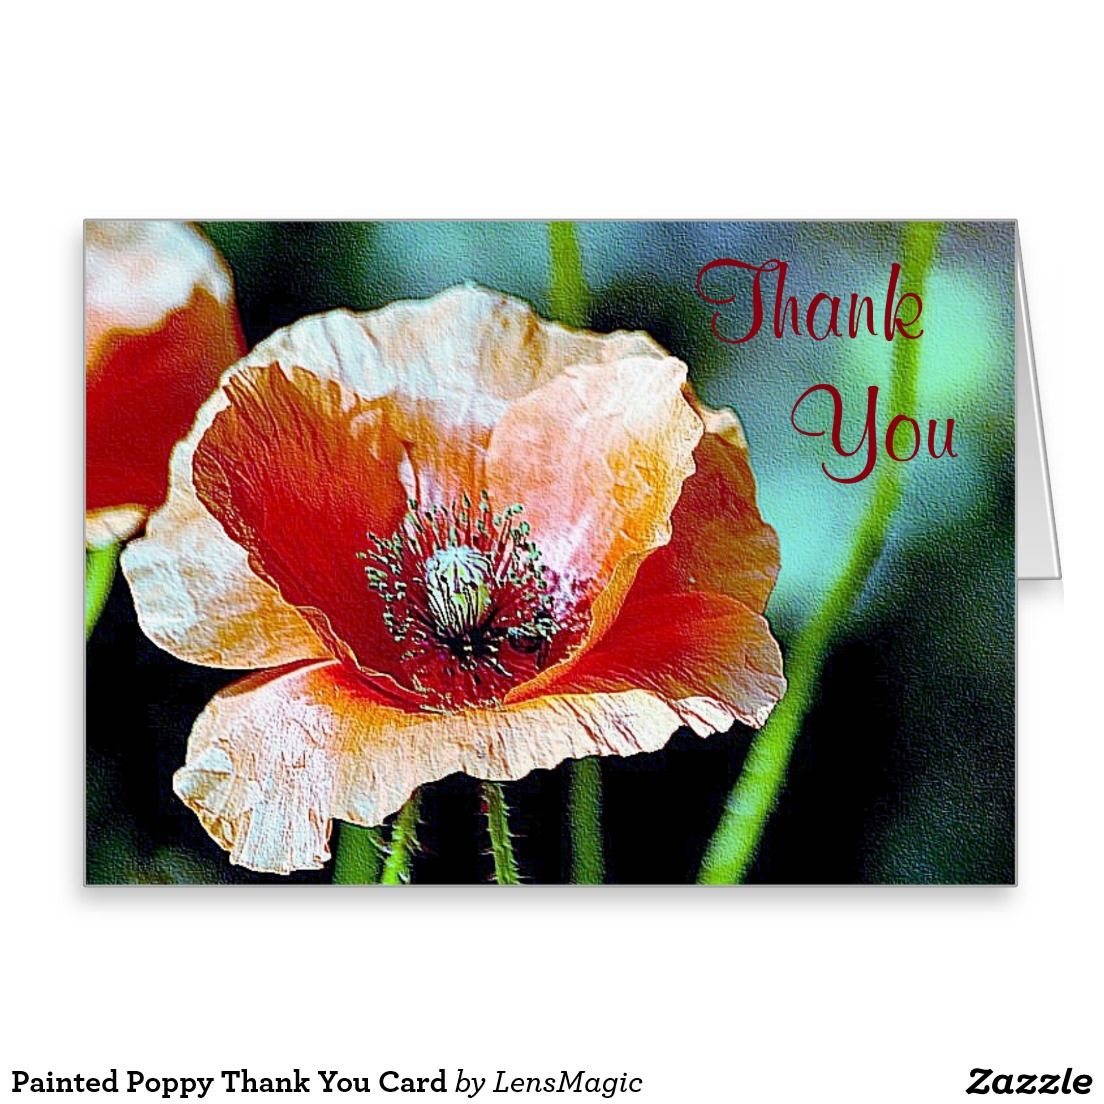 Painted Poppy Thank You Card